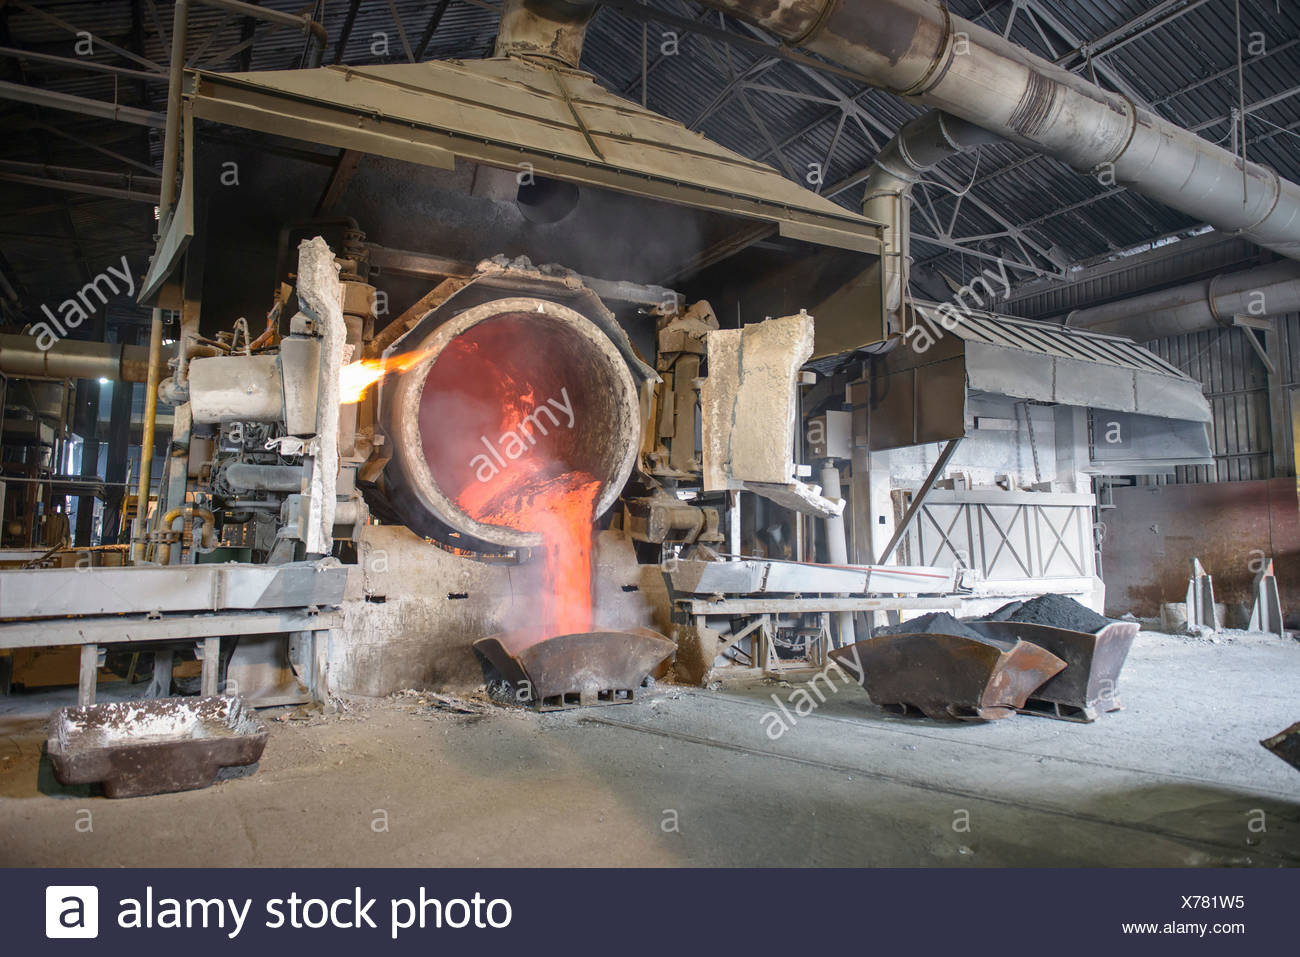 Molten aluminium running into mold in recycling plant - Stock Image